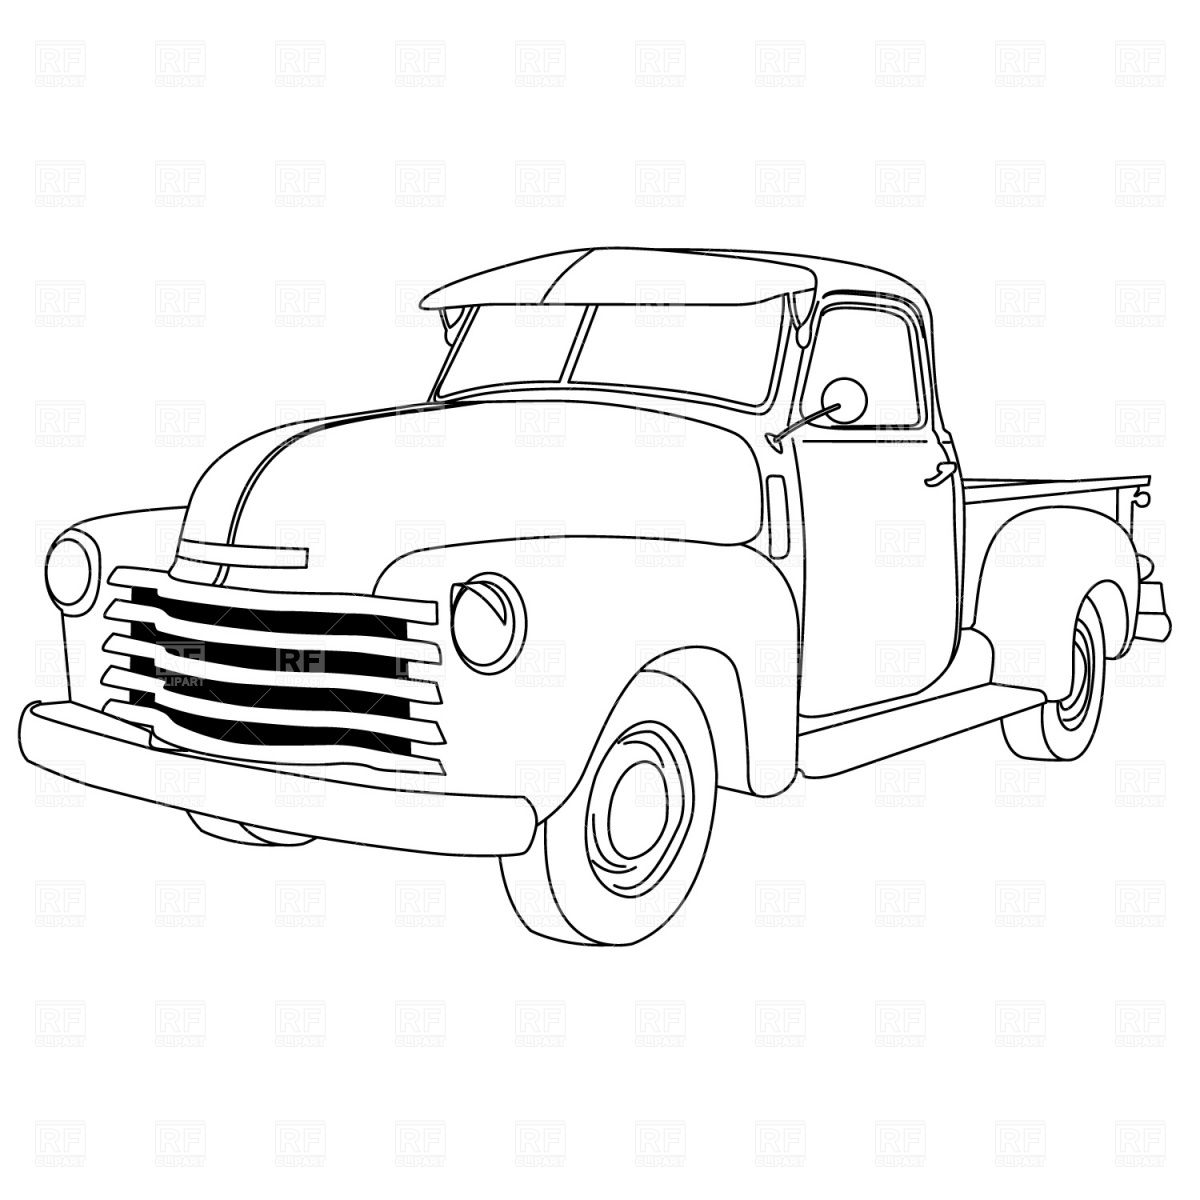 Demolition Derby Coloring Pages At Getdrawings Com Free For